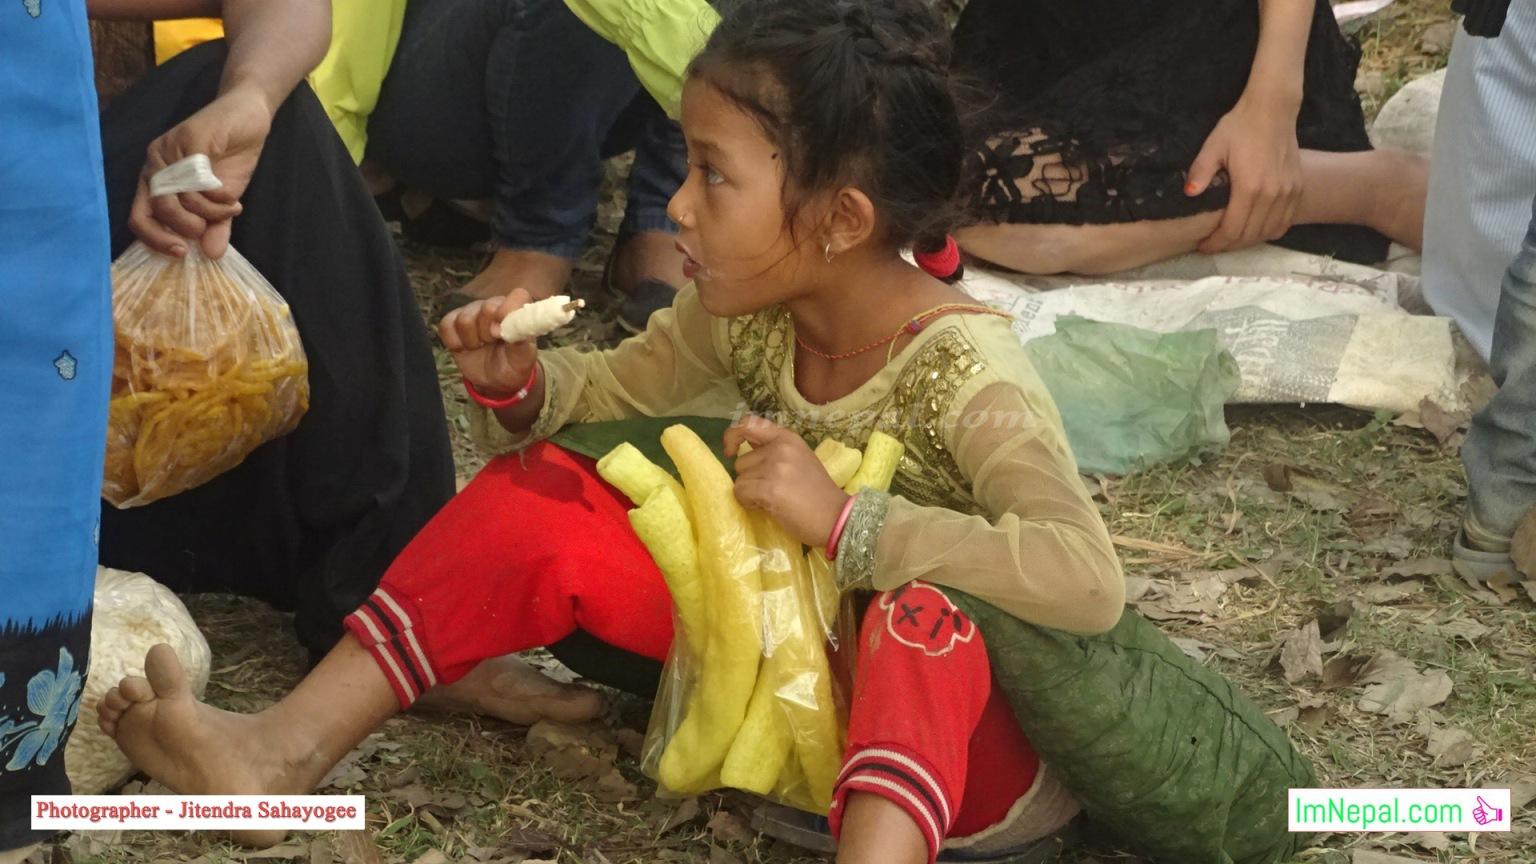 Pictures of Little Girl in Nepal is Eating Ice Cream